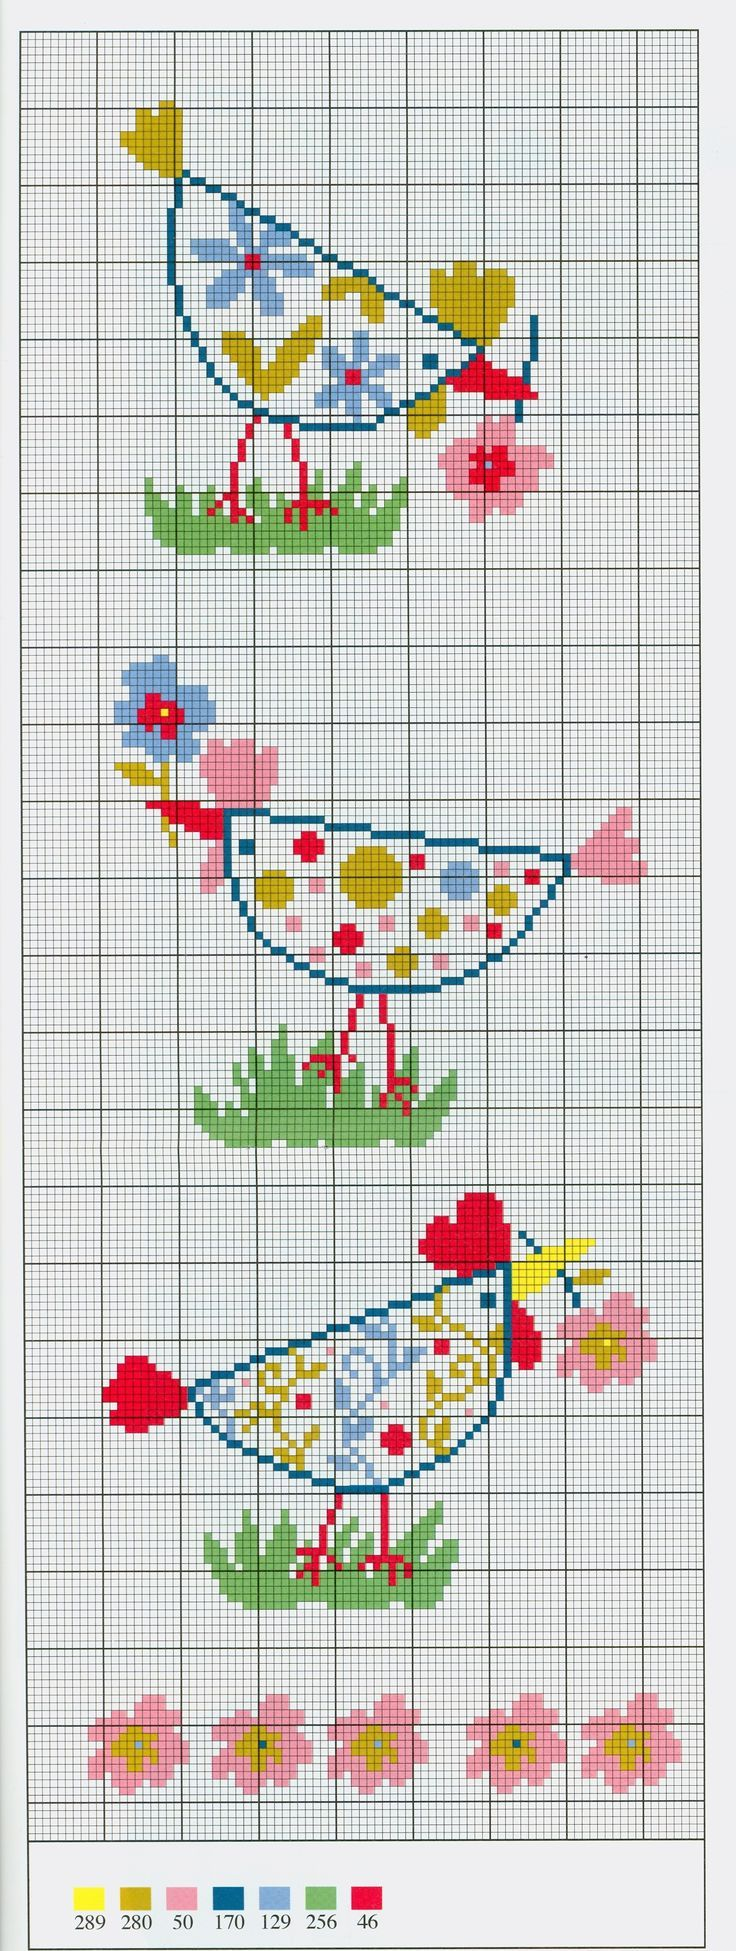 Floral chickens free cross stitch pattern from www.coatscrafts.pl